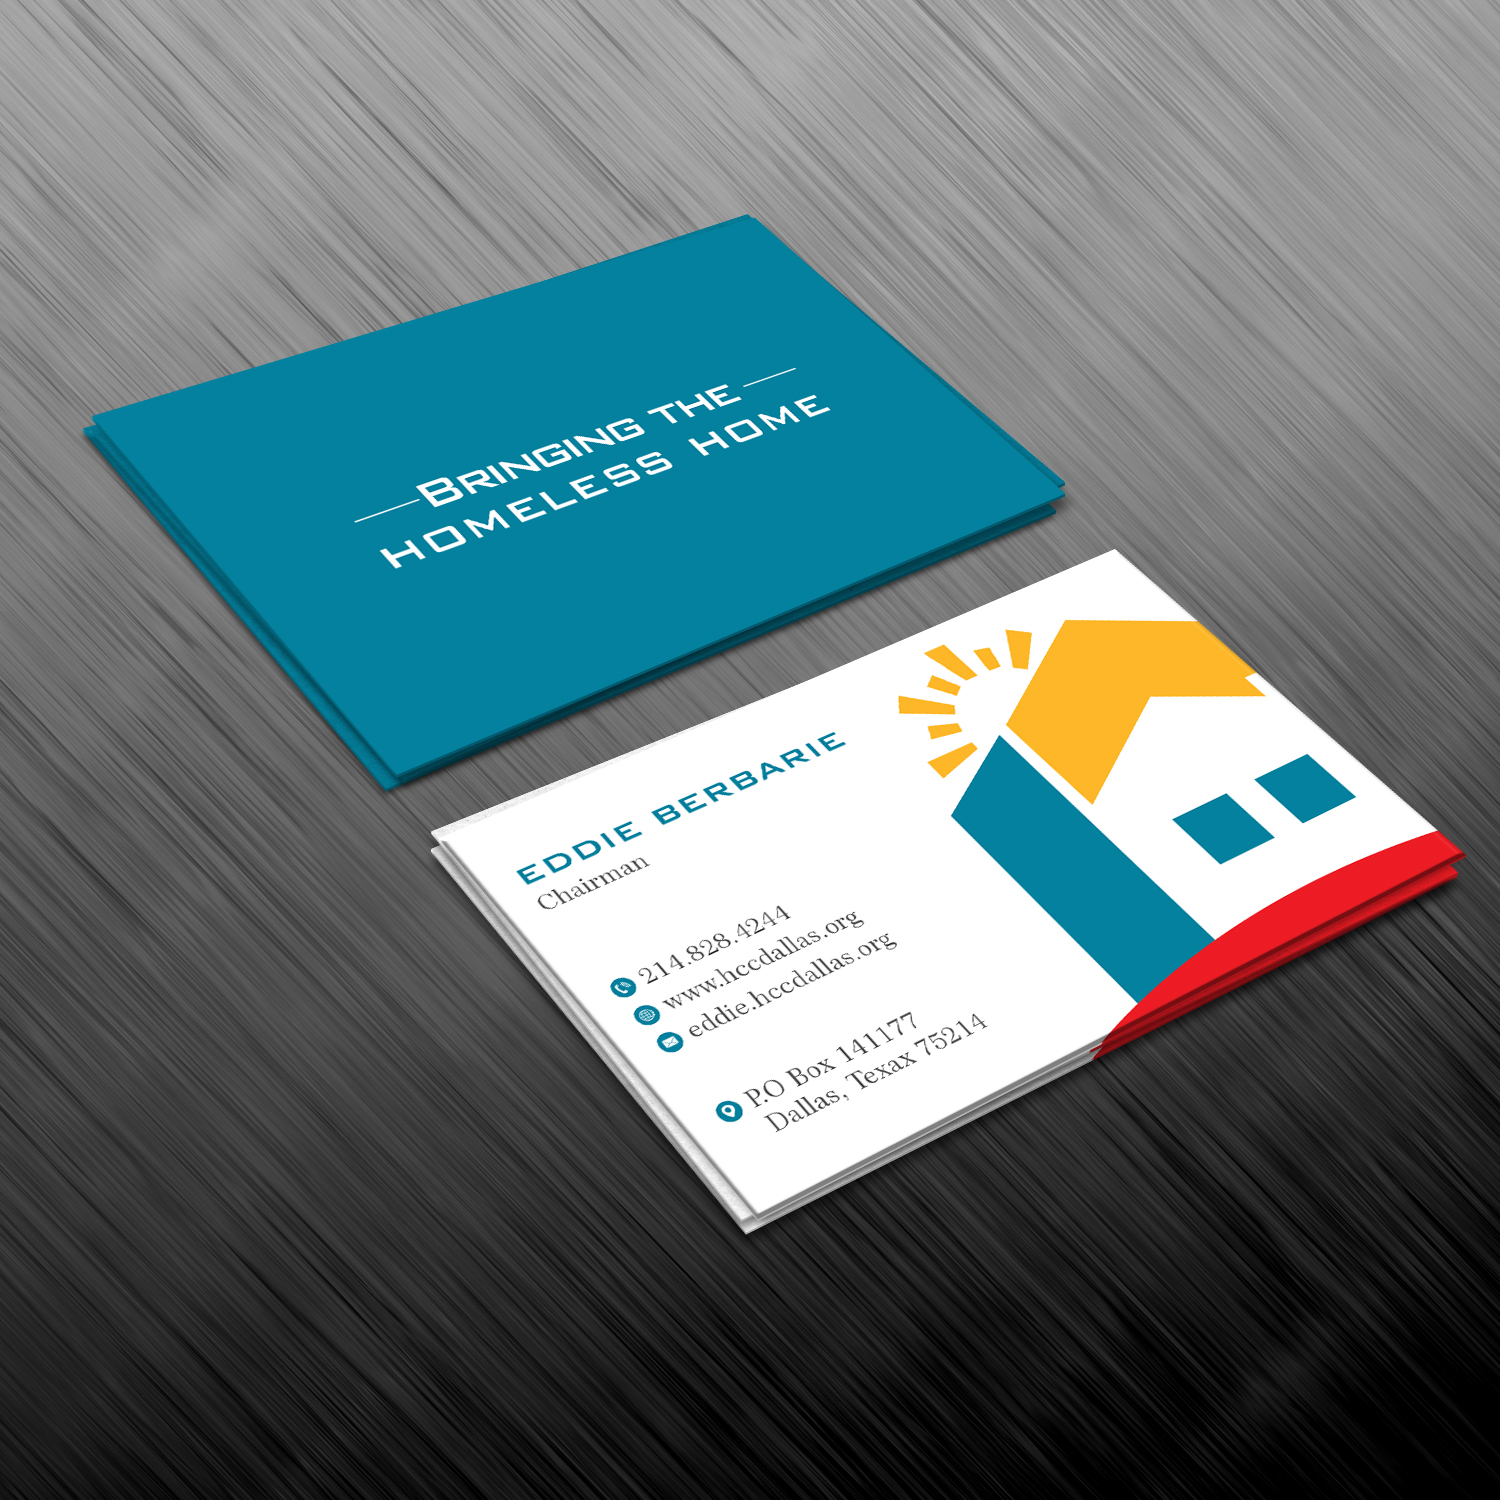 Colorful serious non profit business card design for housing business card design by creative jiniya for housing crisis center design 17976035 colourmoves